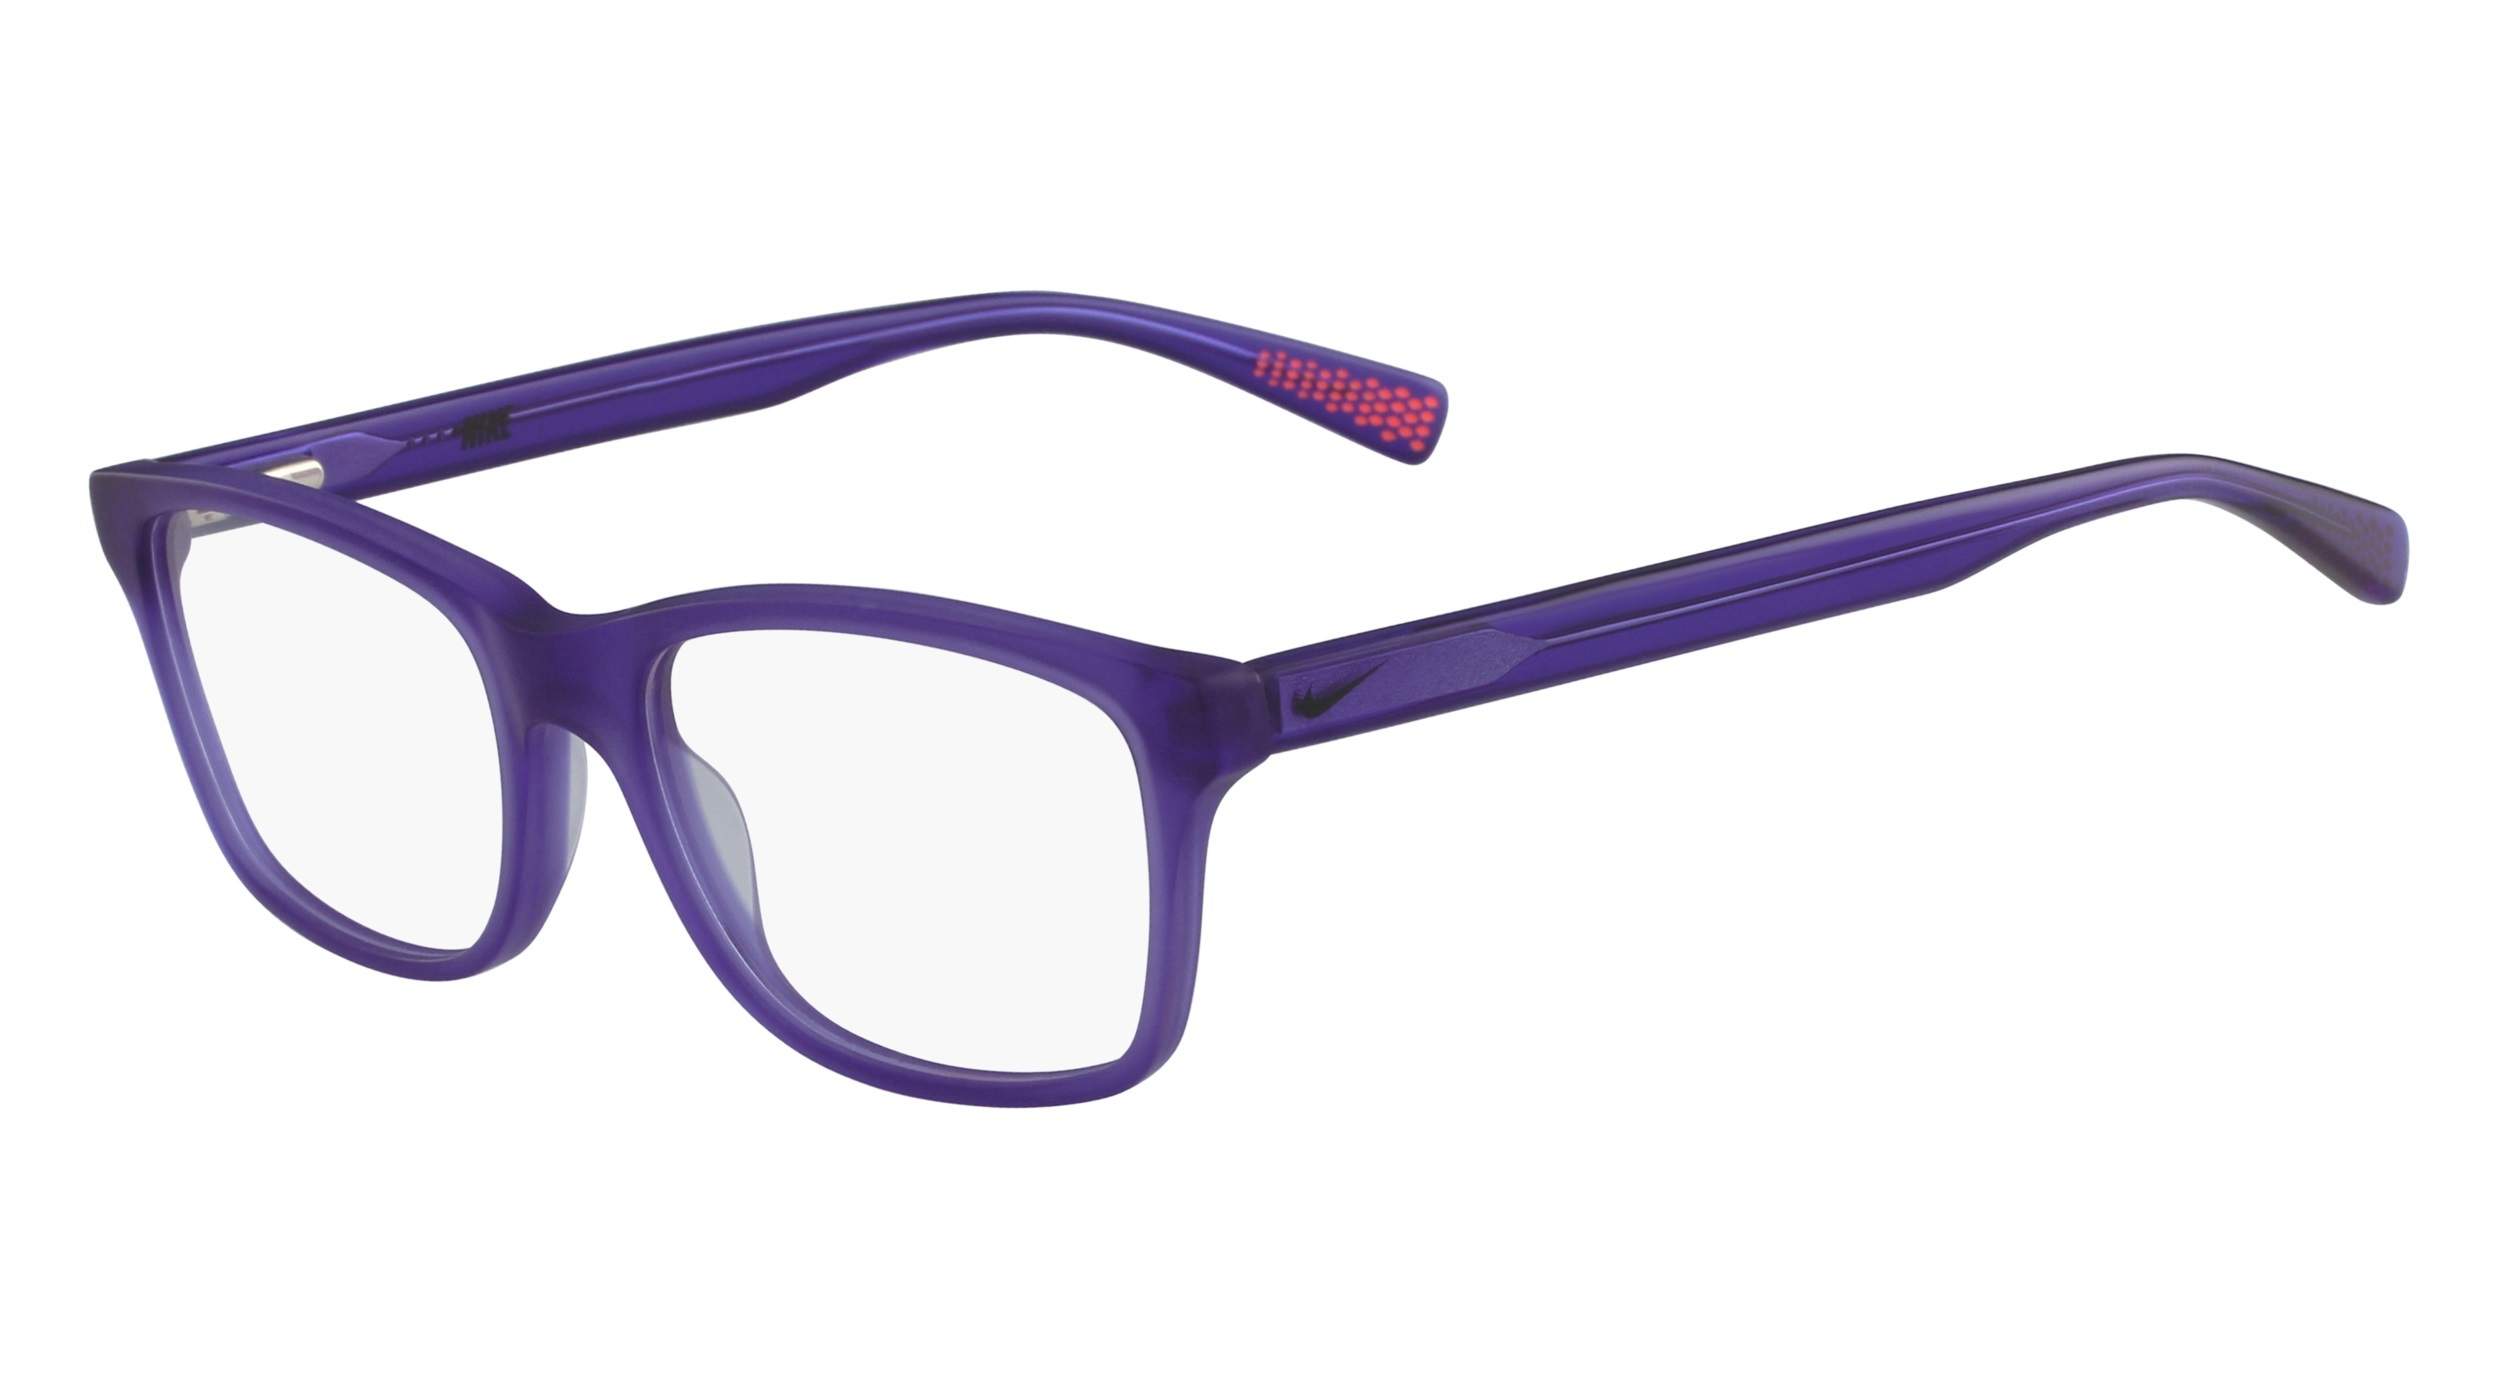 df1027fdb1bc Nike 5015-500 Kids Eyeglasses Court Purple Nike5015-500 - Optiwow